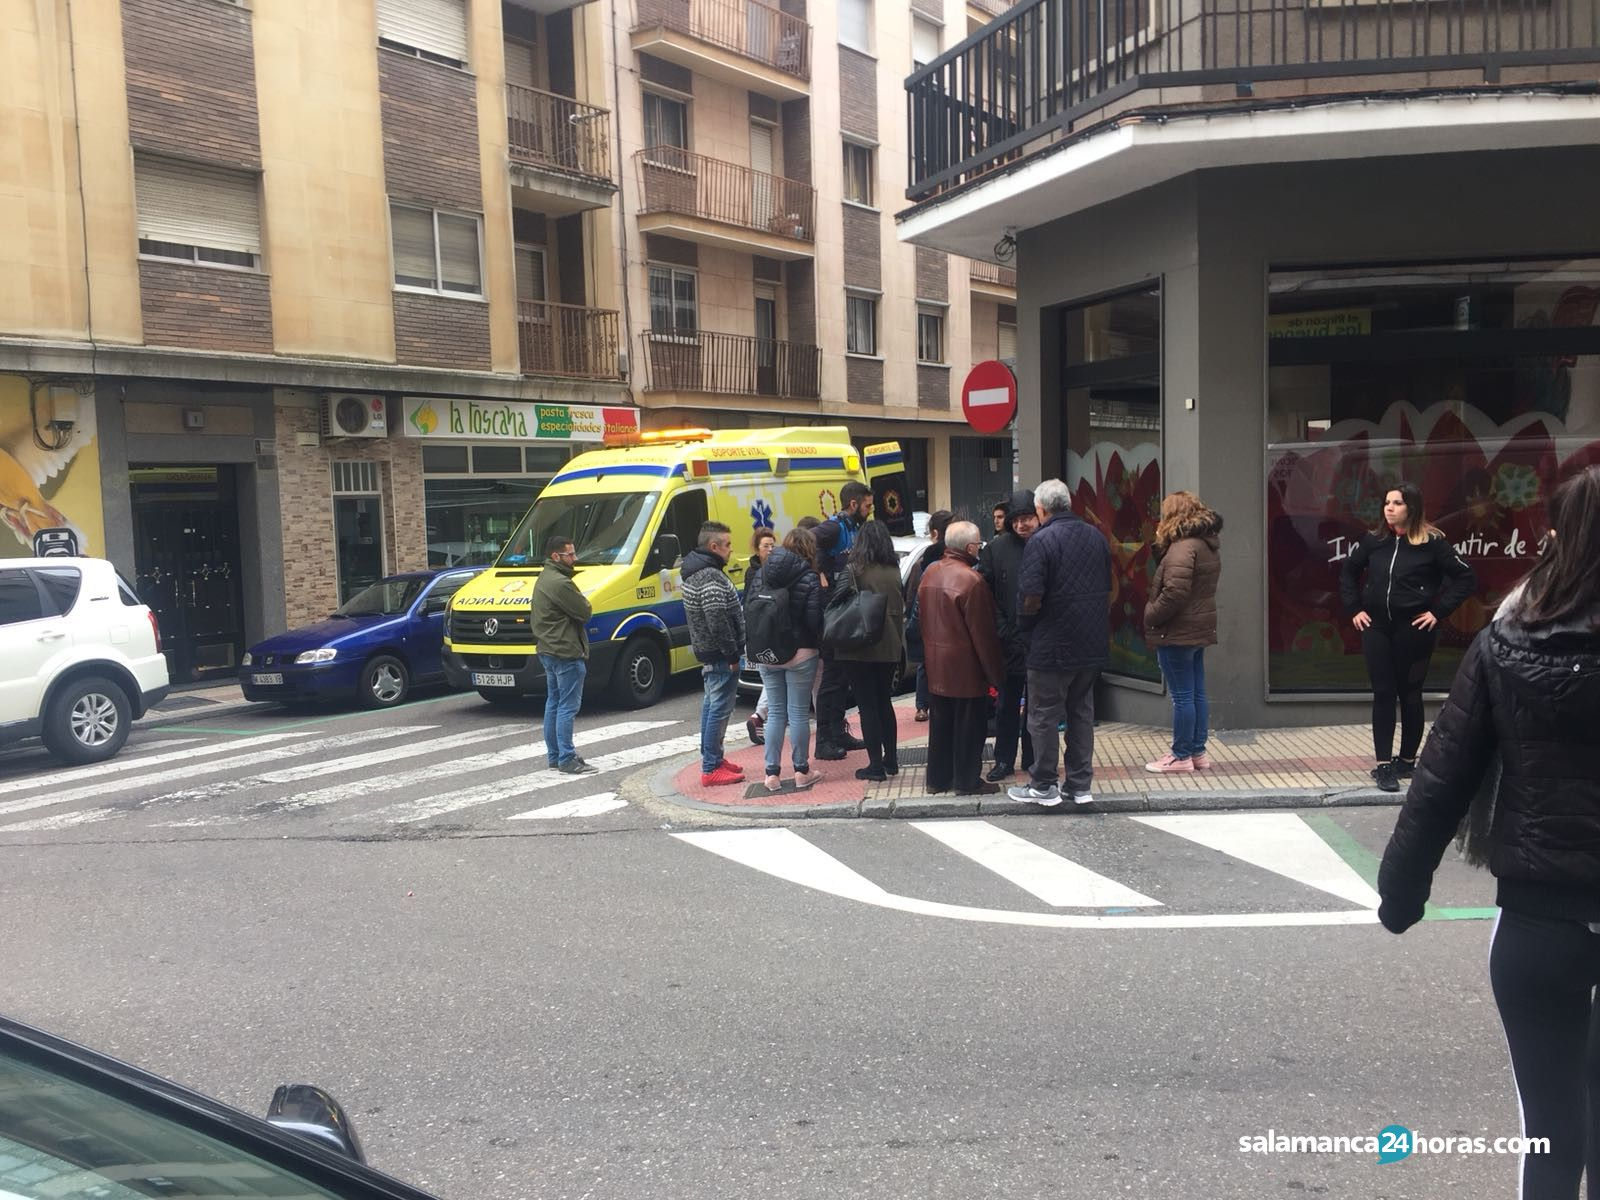 Ambulancia wences moreno